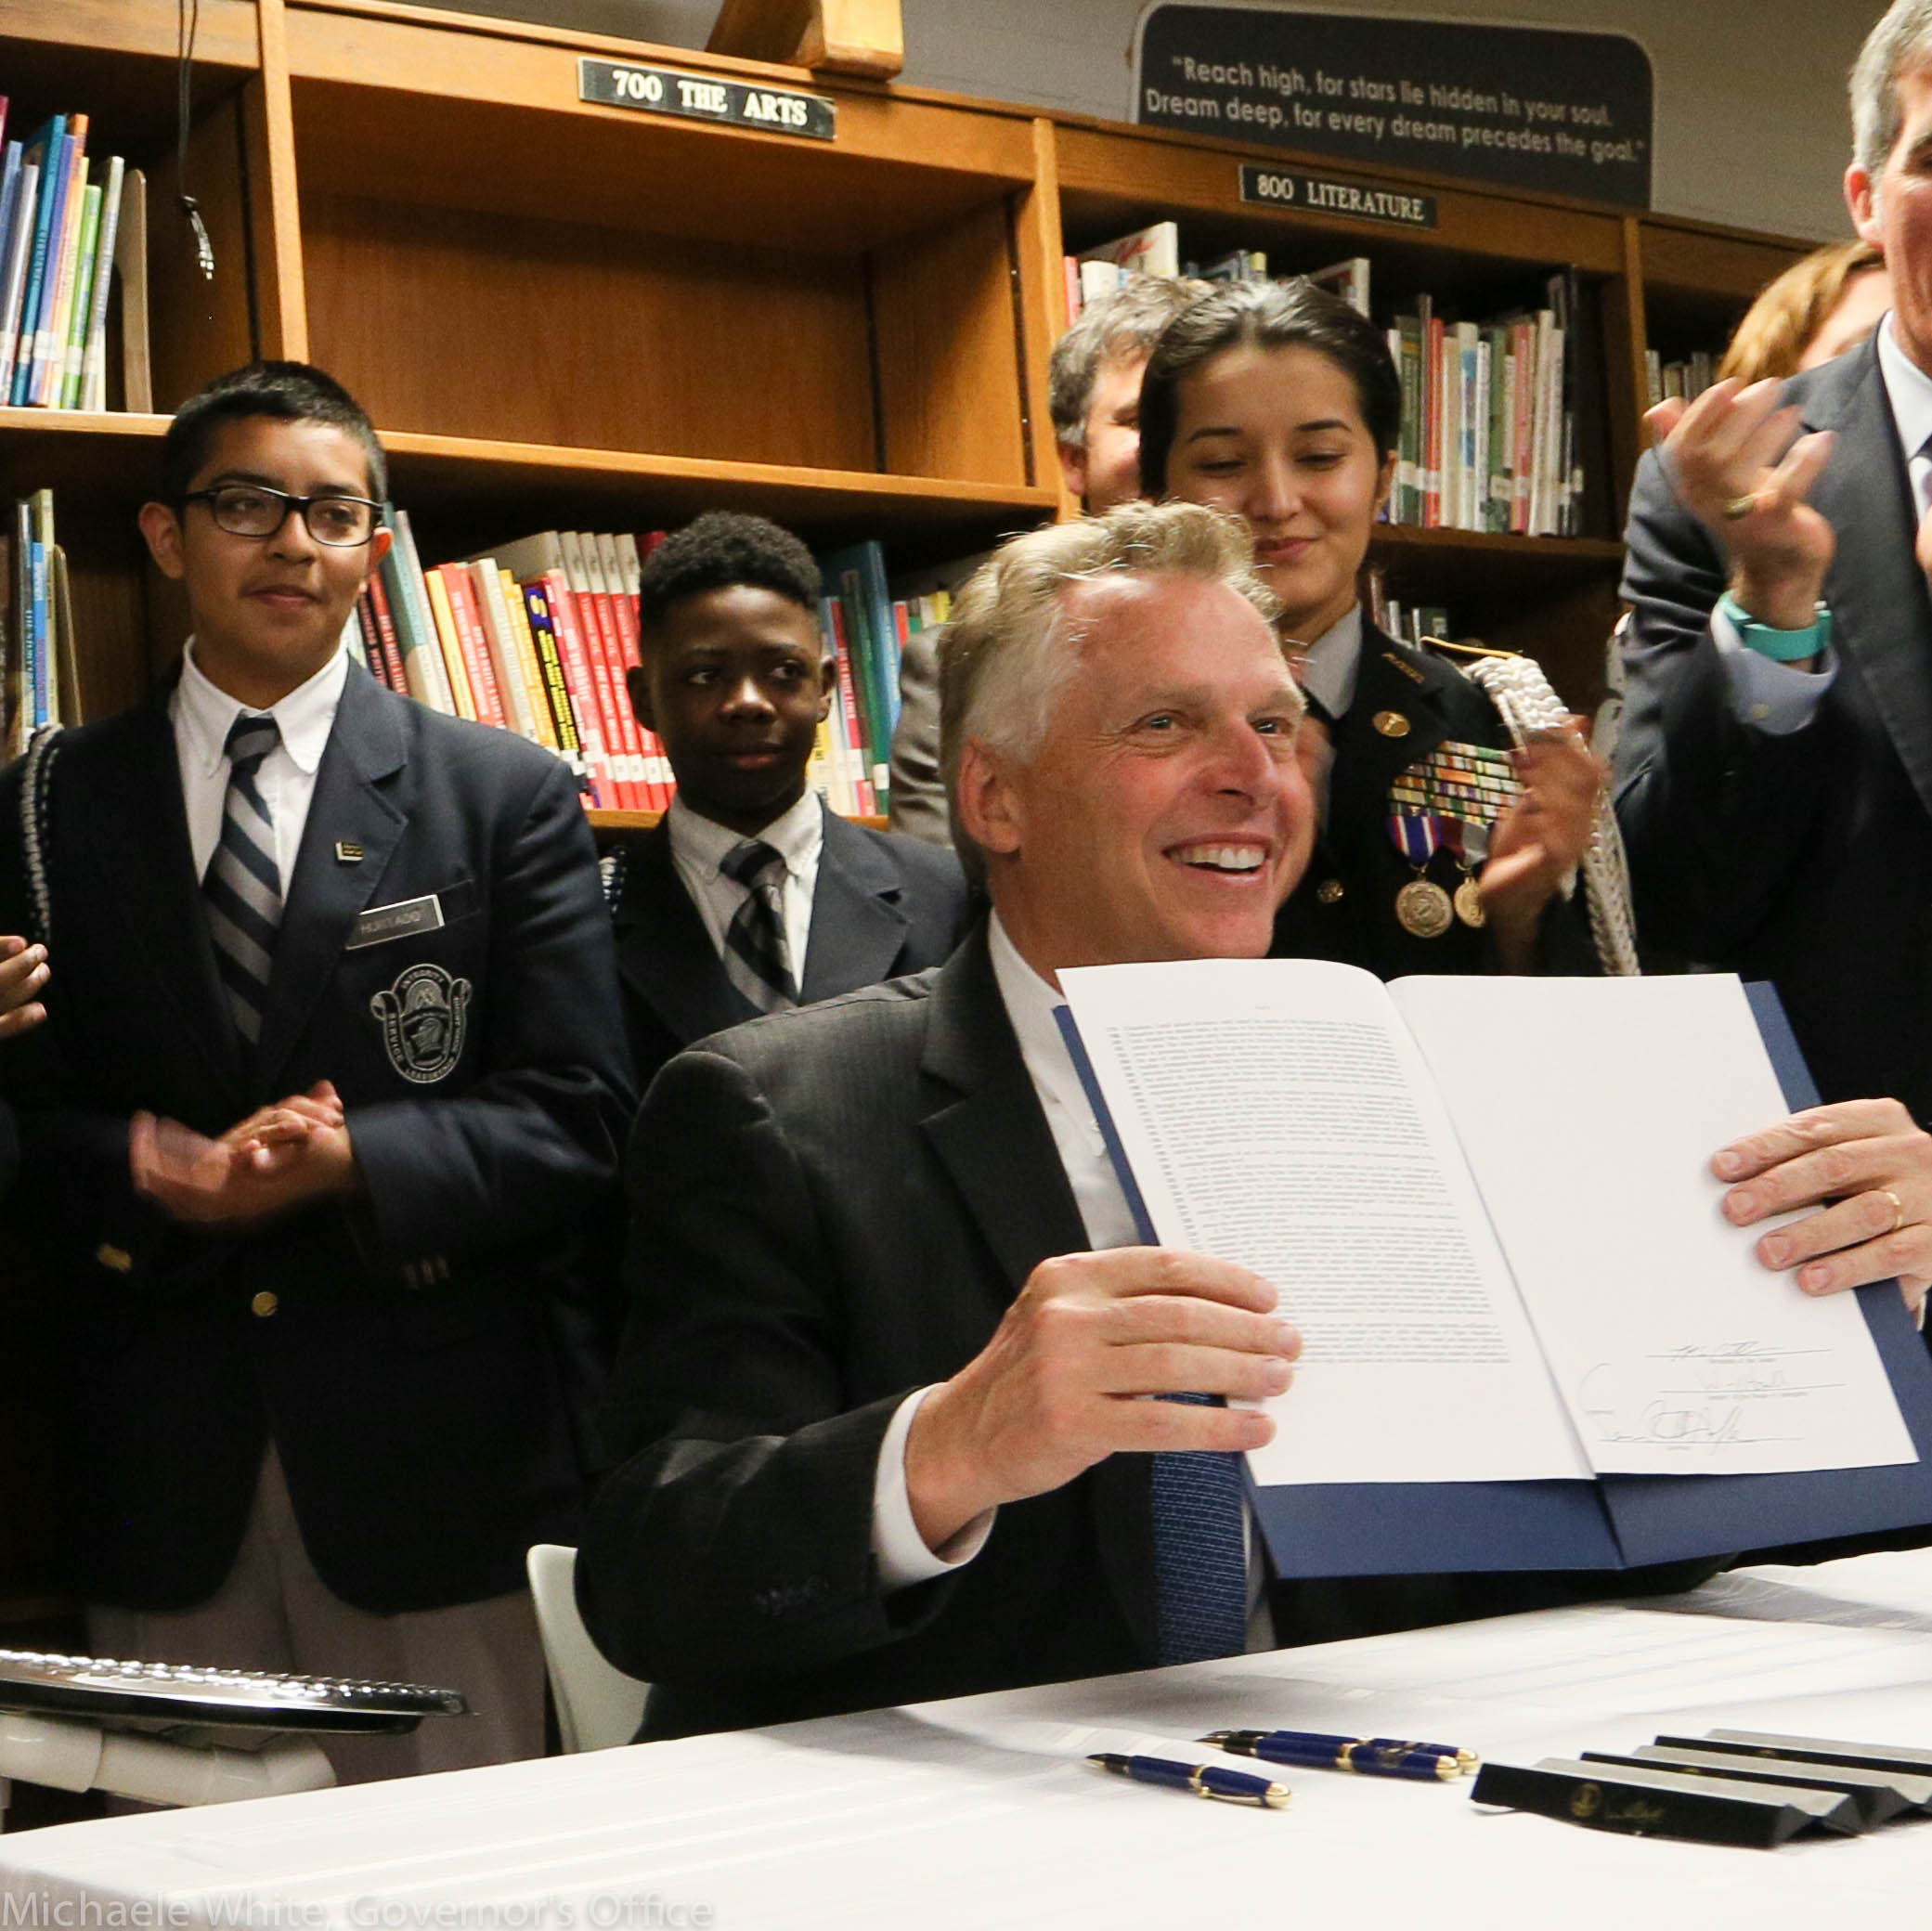 Virginia is adding computer science to every K-12 school